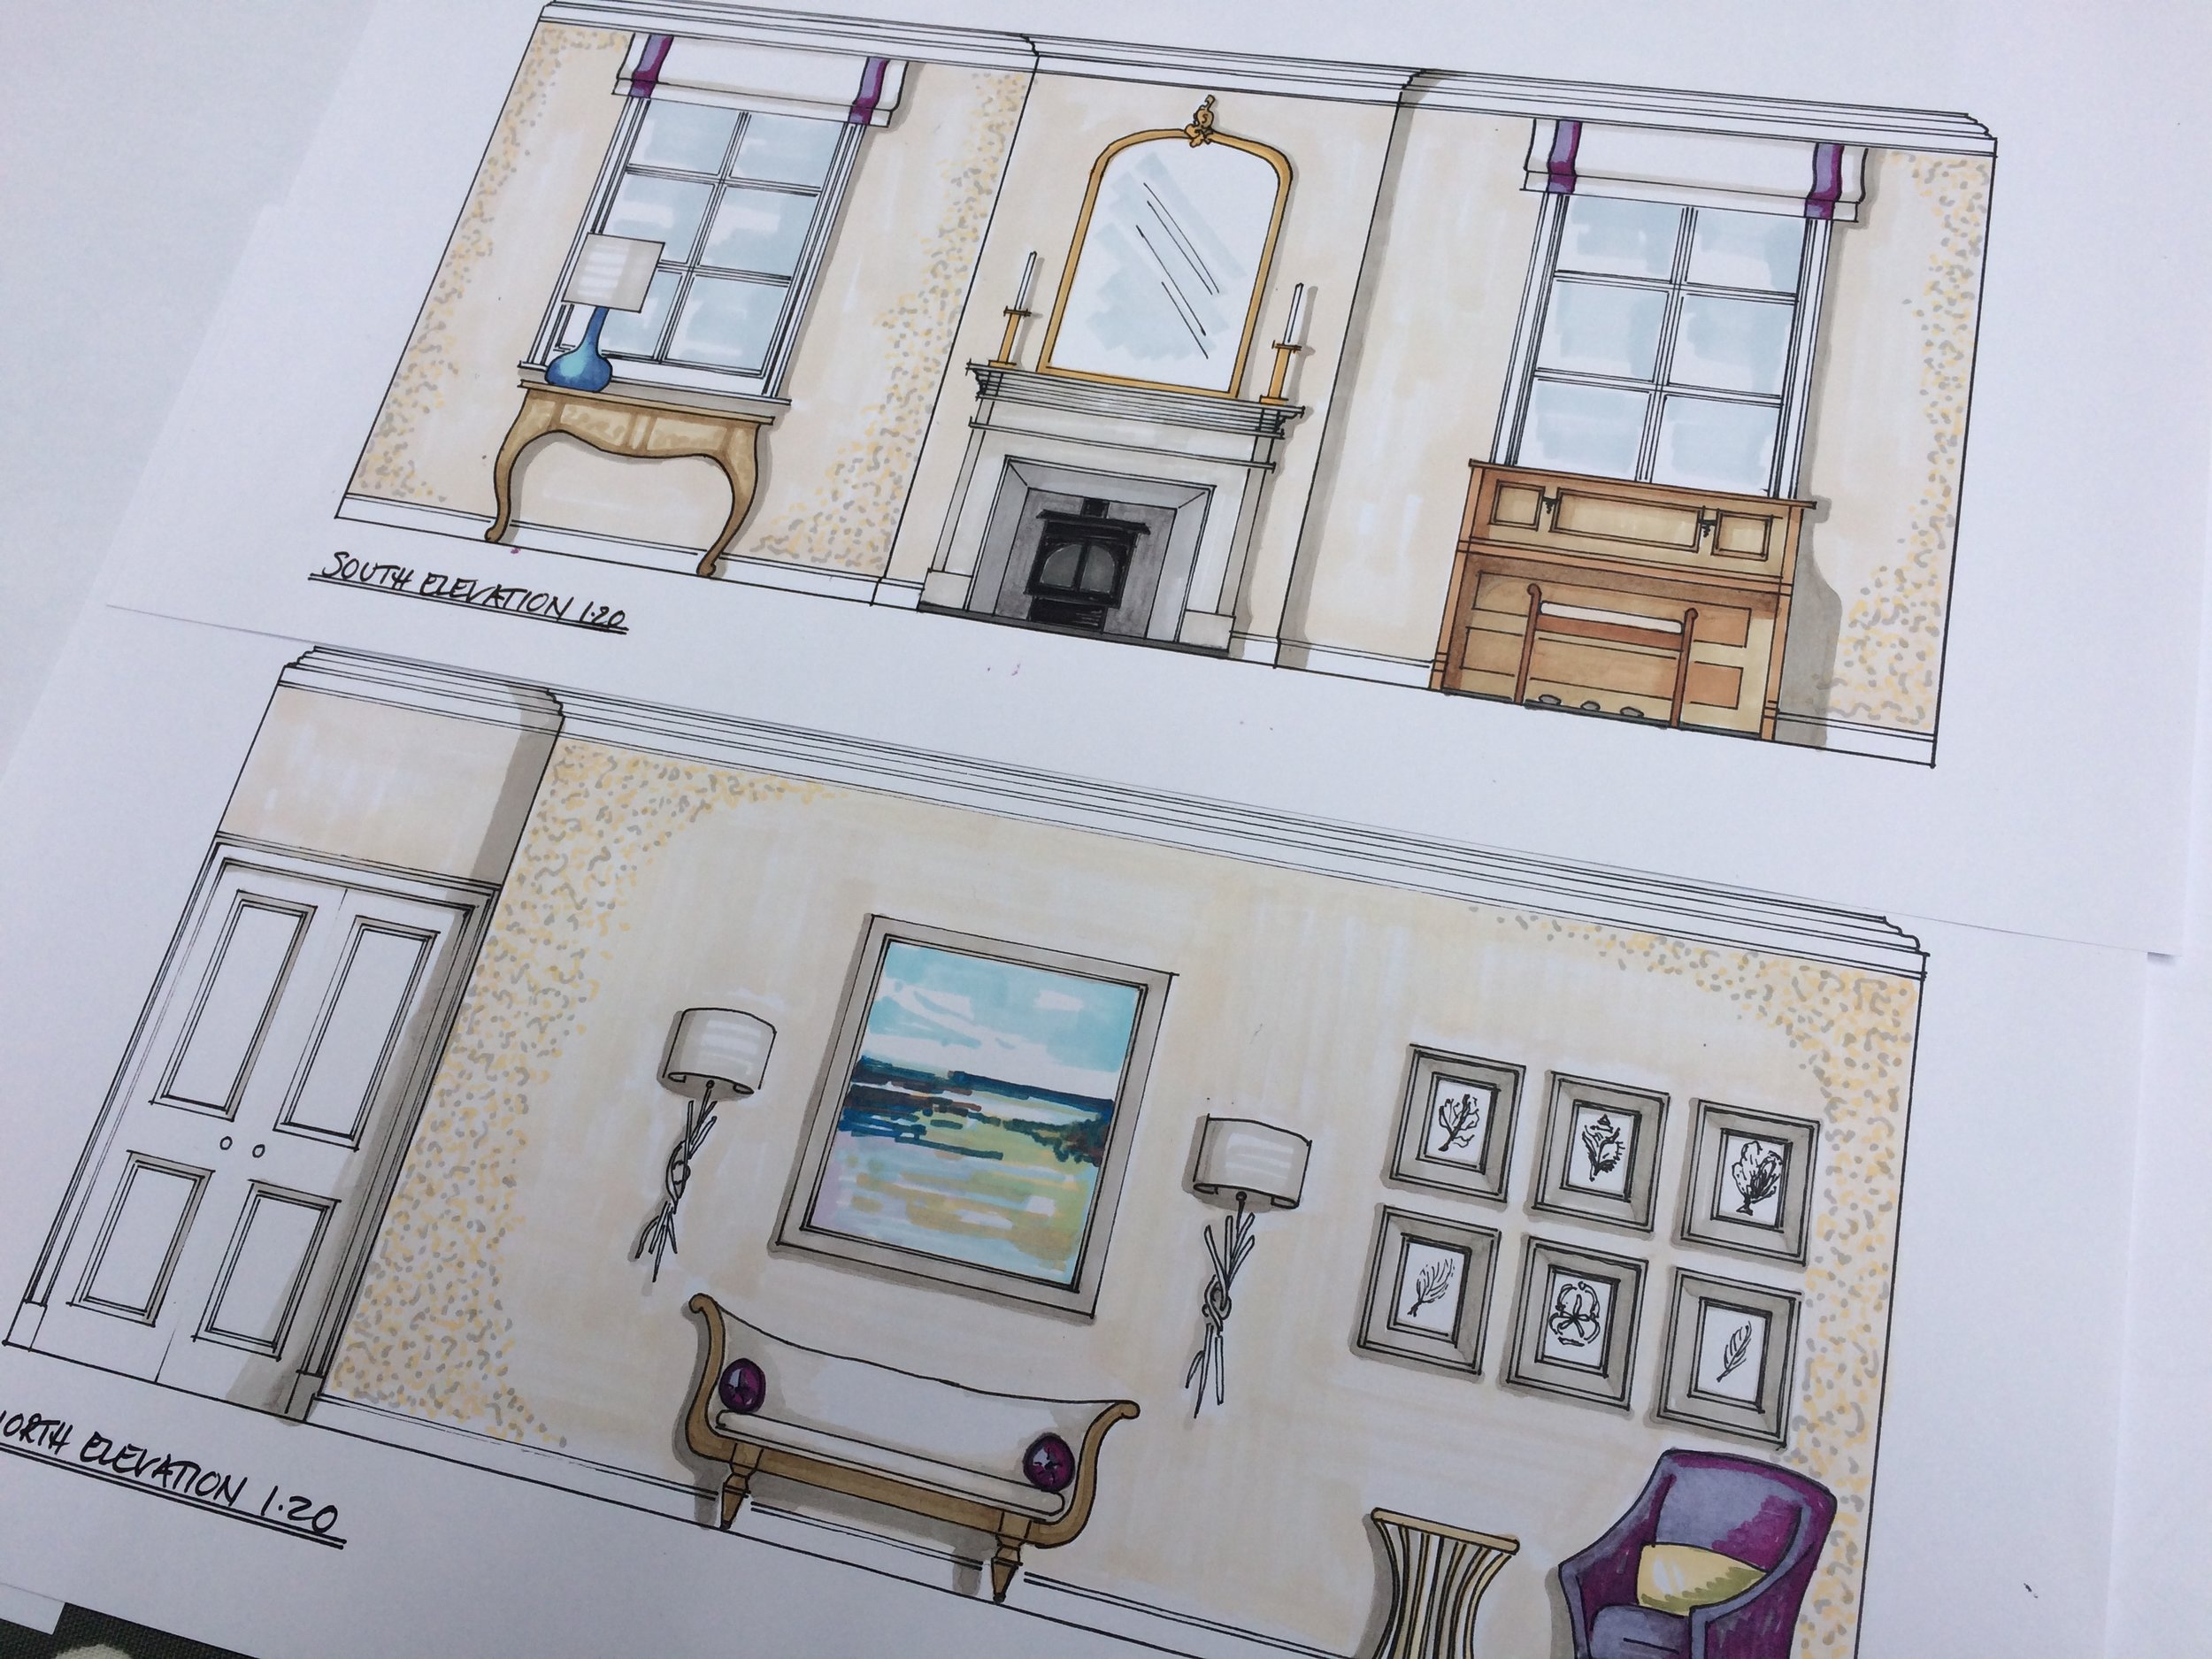 drawing room elevations.JPG